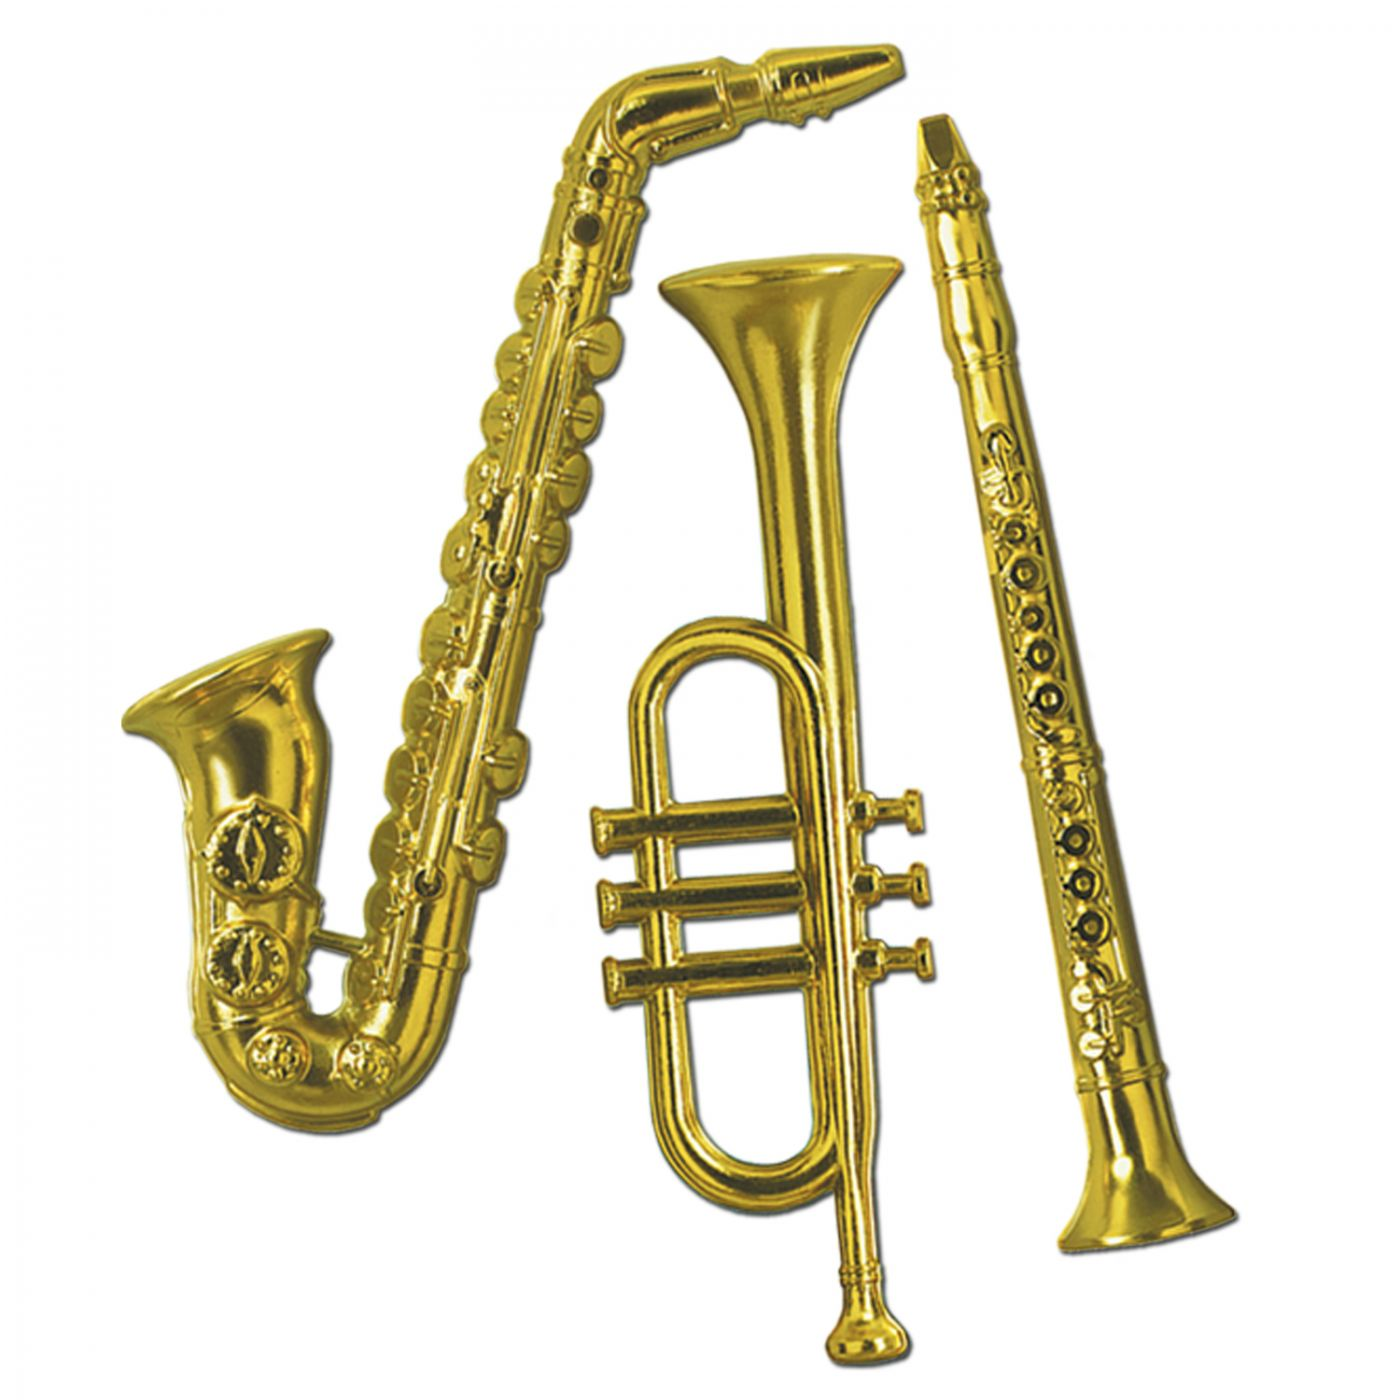 Gold Plastic Musical Instruments image